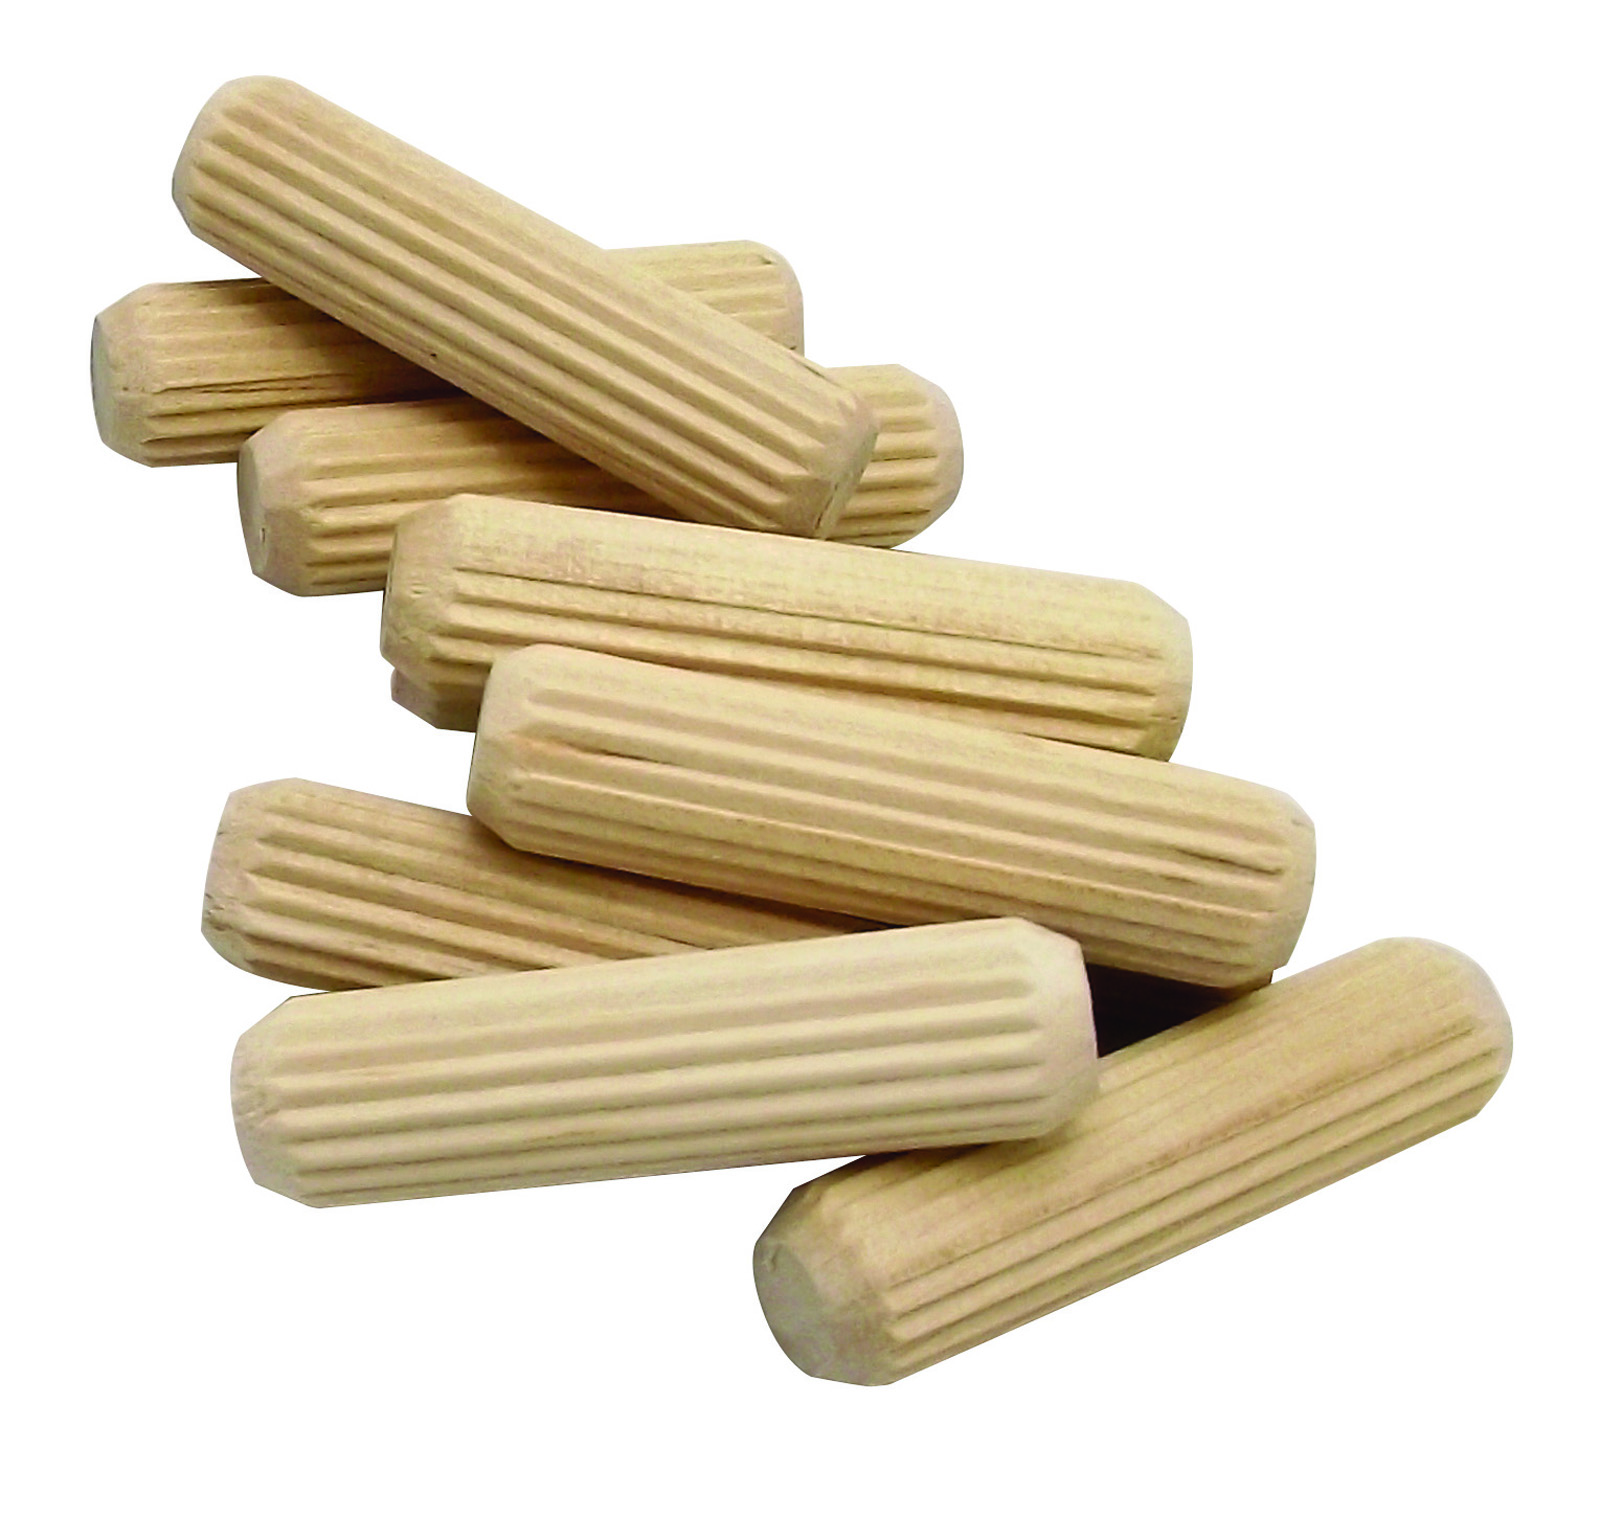 Discontinued Ikea Products Dowel Pins 5 16 Quot Milescraft